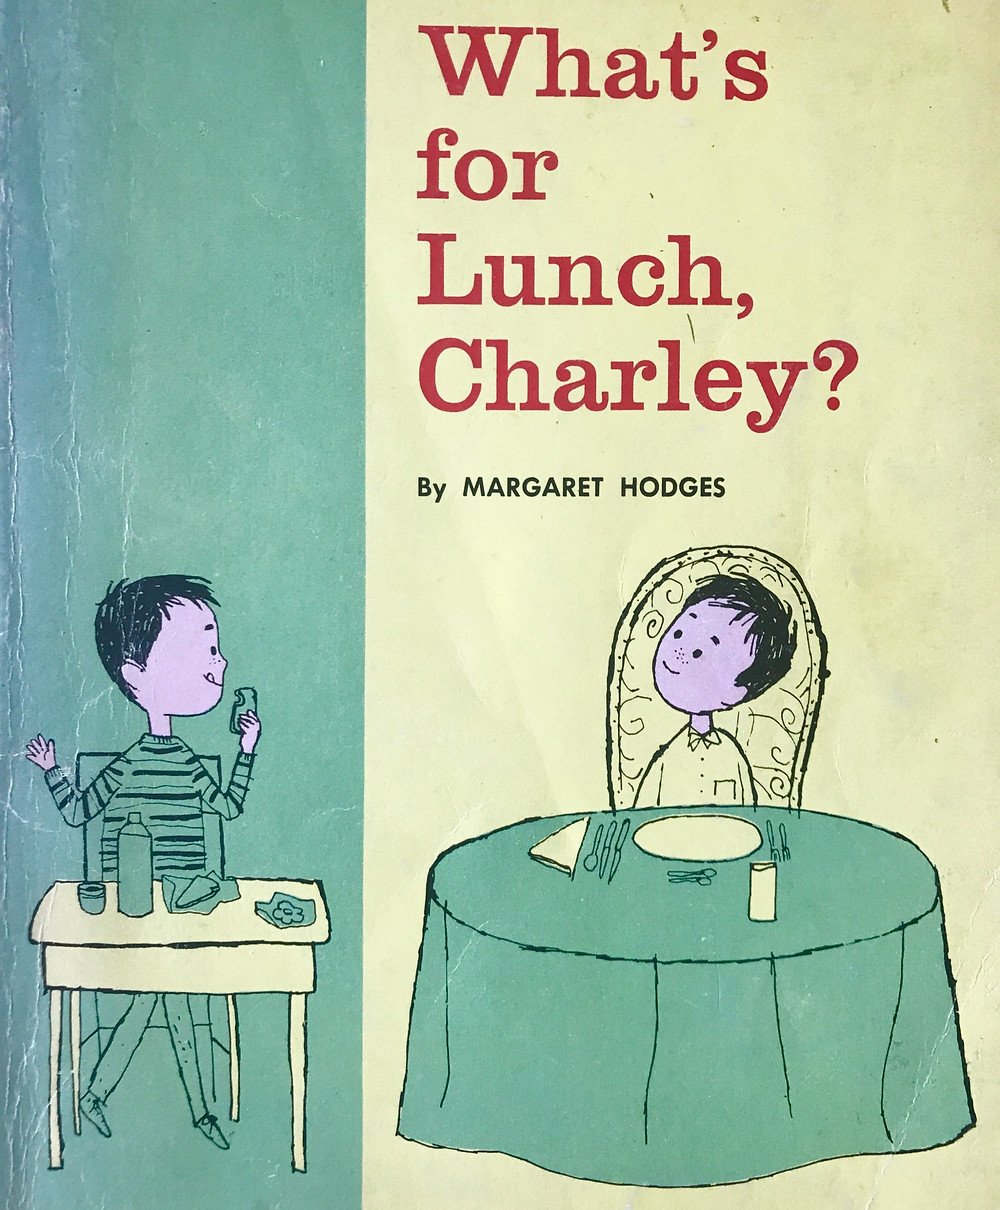 two boys one sitting at a school desk with packed lunch, the other at a fancy restaurant table